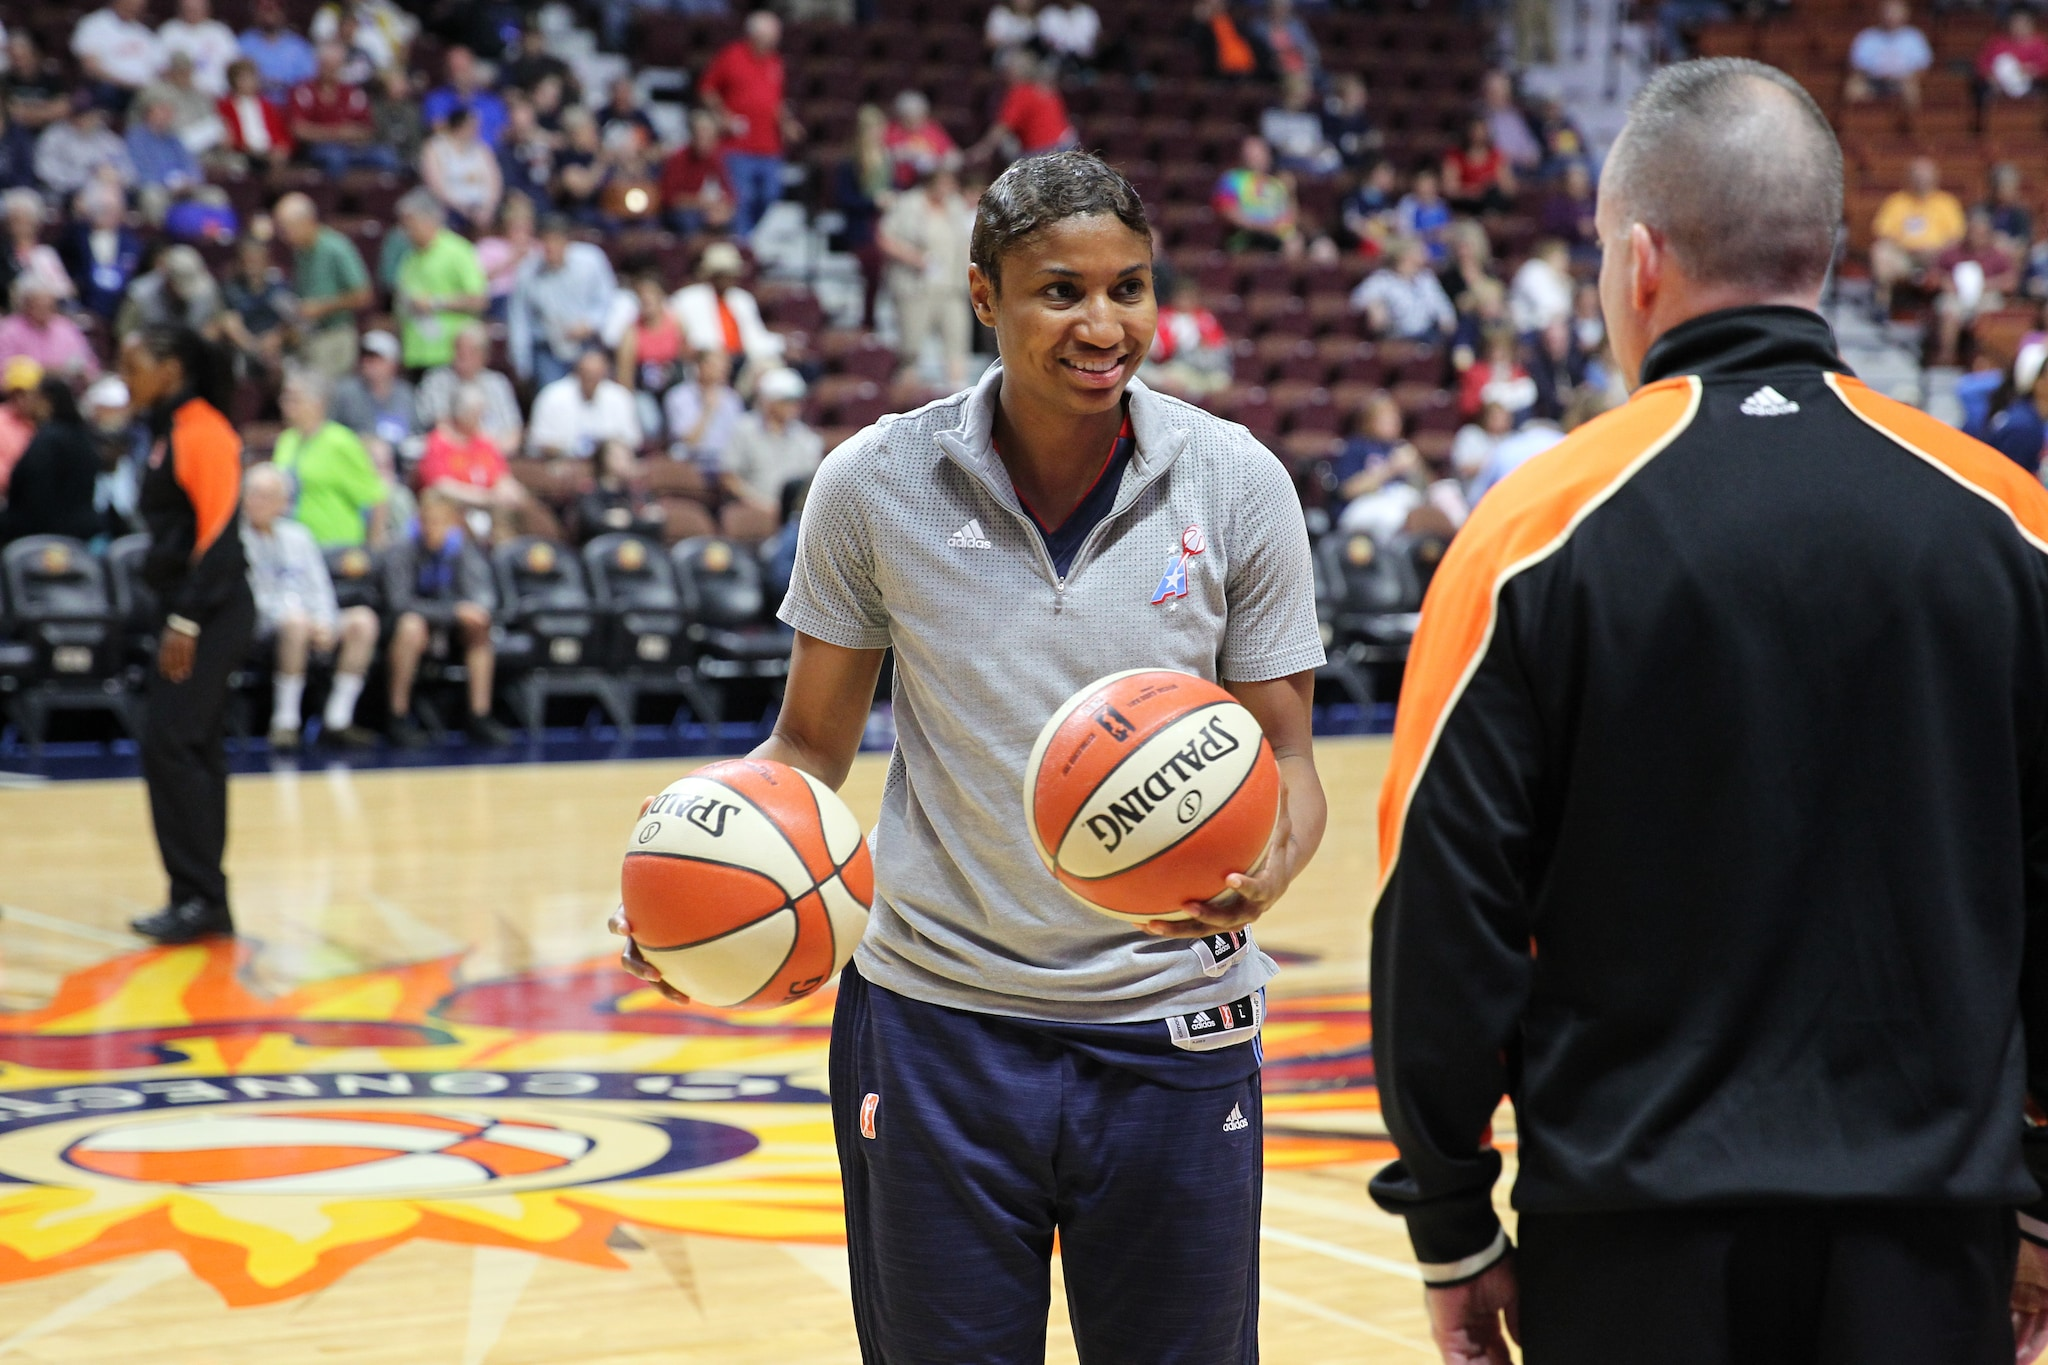 UNCASVILLE, CT - JUNE 3: Angel McCoughtry #35 of the Atlanta Dream warms up before the game against the Connecticut Sun on June 3, 2016 at Mohegan Sun Arena in Uncasville, CT. NOTE TO USER: User expressly acknowledges and agrees that, by downloading and or using this Photograph, user is consenting to the terms and conditions of the Getty Images License Agreement. Mandatory Copyright Notice: Copyright 2016 NBAE (Photo by Chris Marion/NBAE via Getty Images)